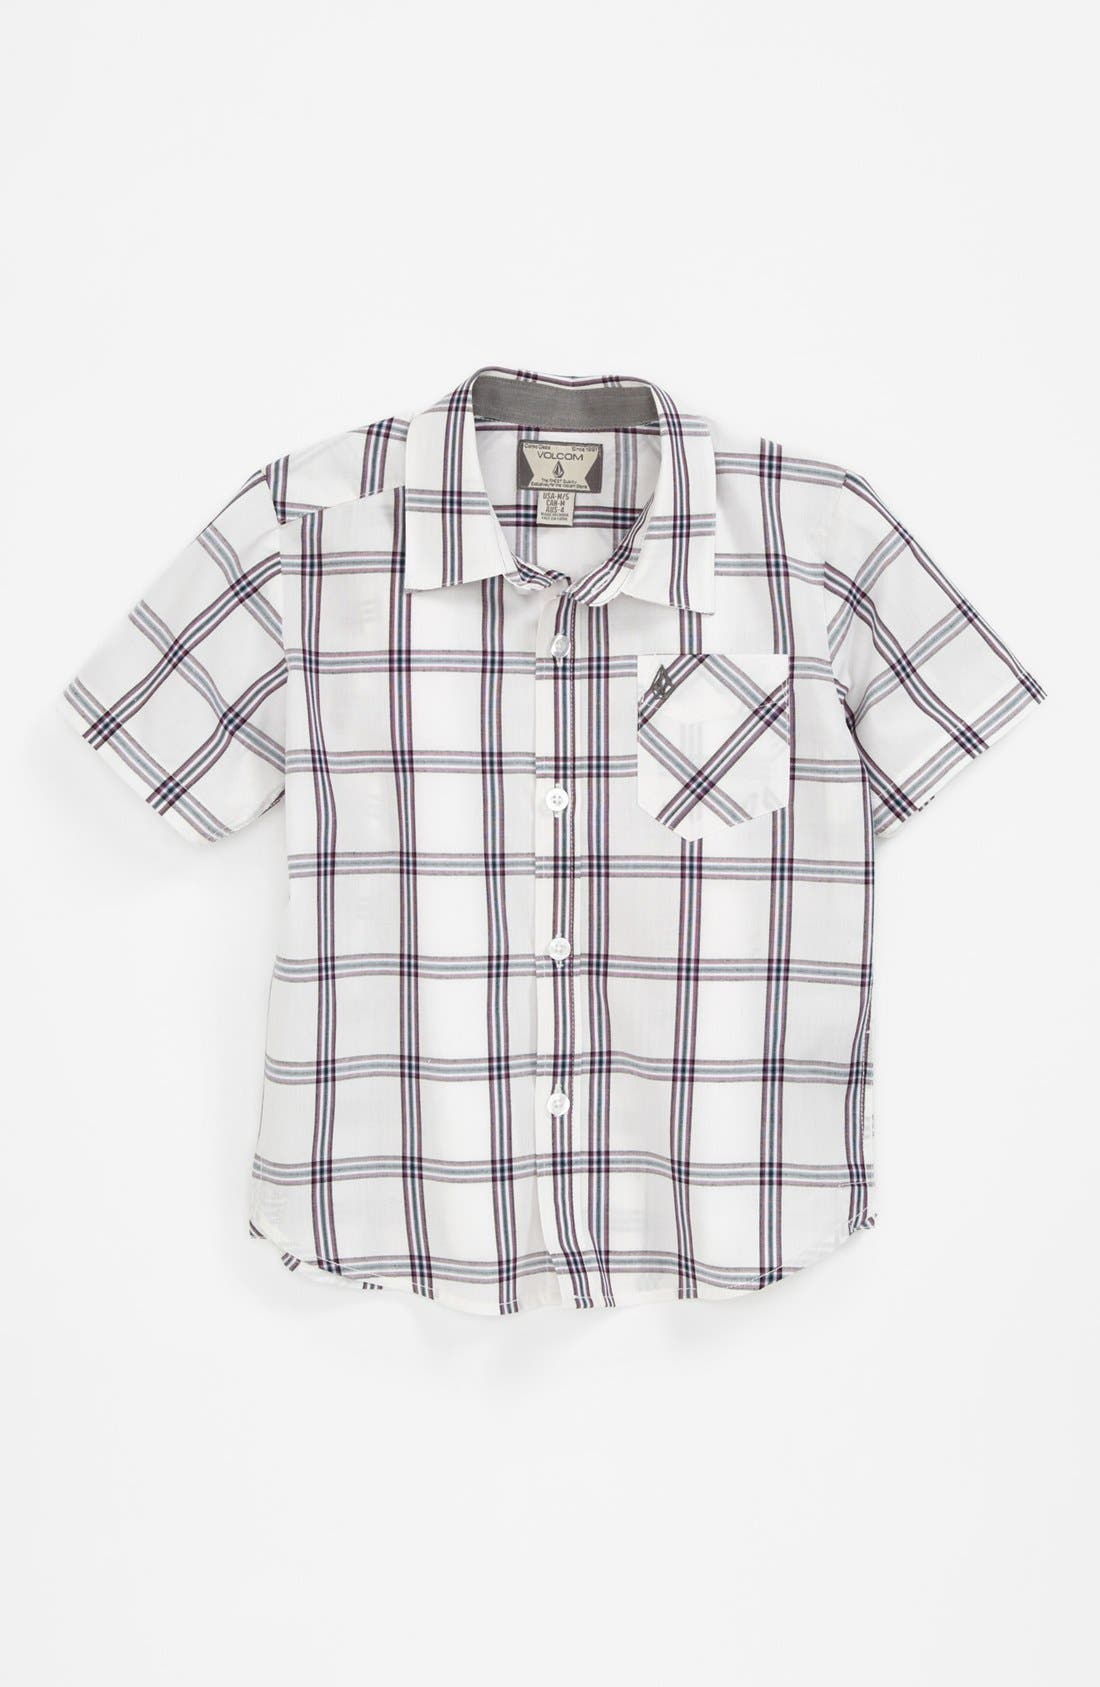 Alternate Image 1 Selected - Volcom 'Why Factor' Woven Shirt (Big Boys) (Online Only)